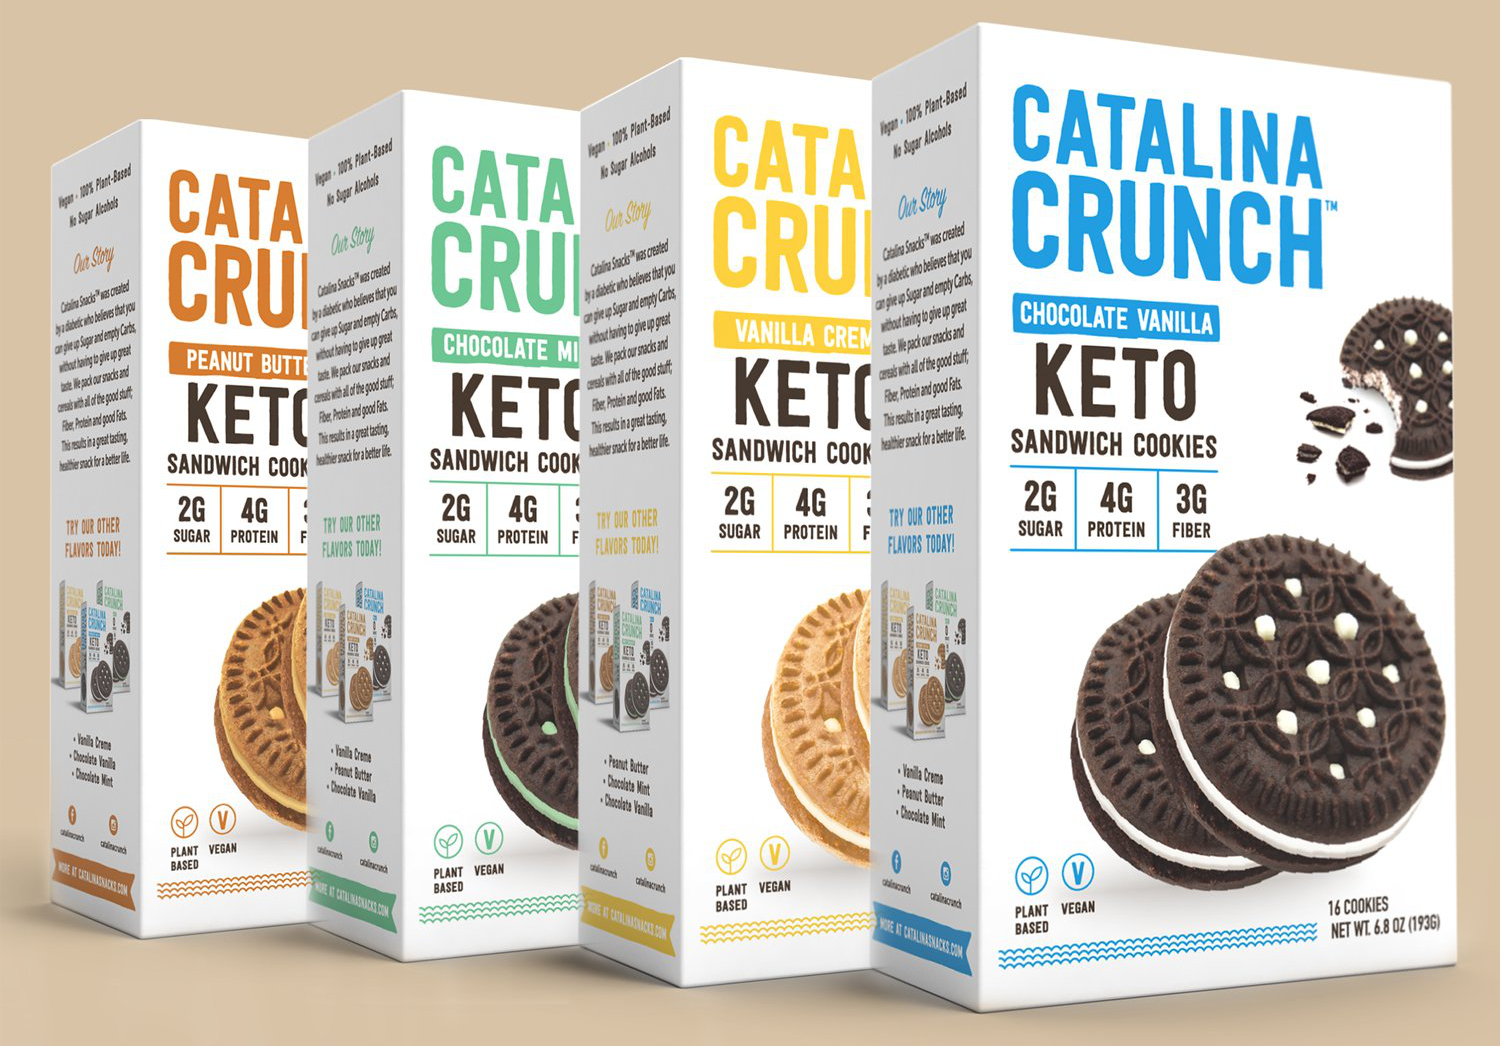 Variety of keto-friendly cookies from Catalina Crunch